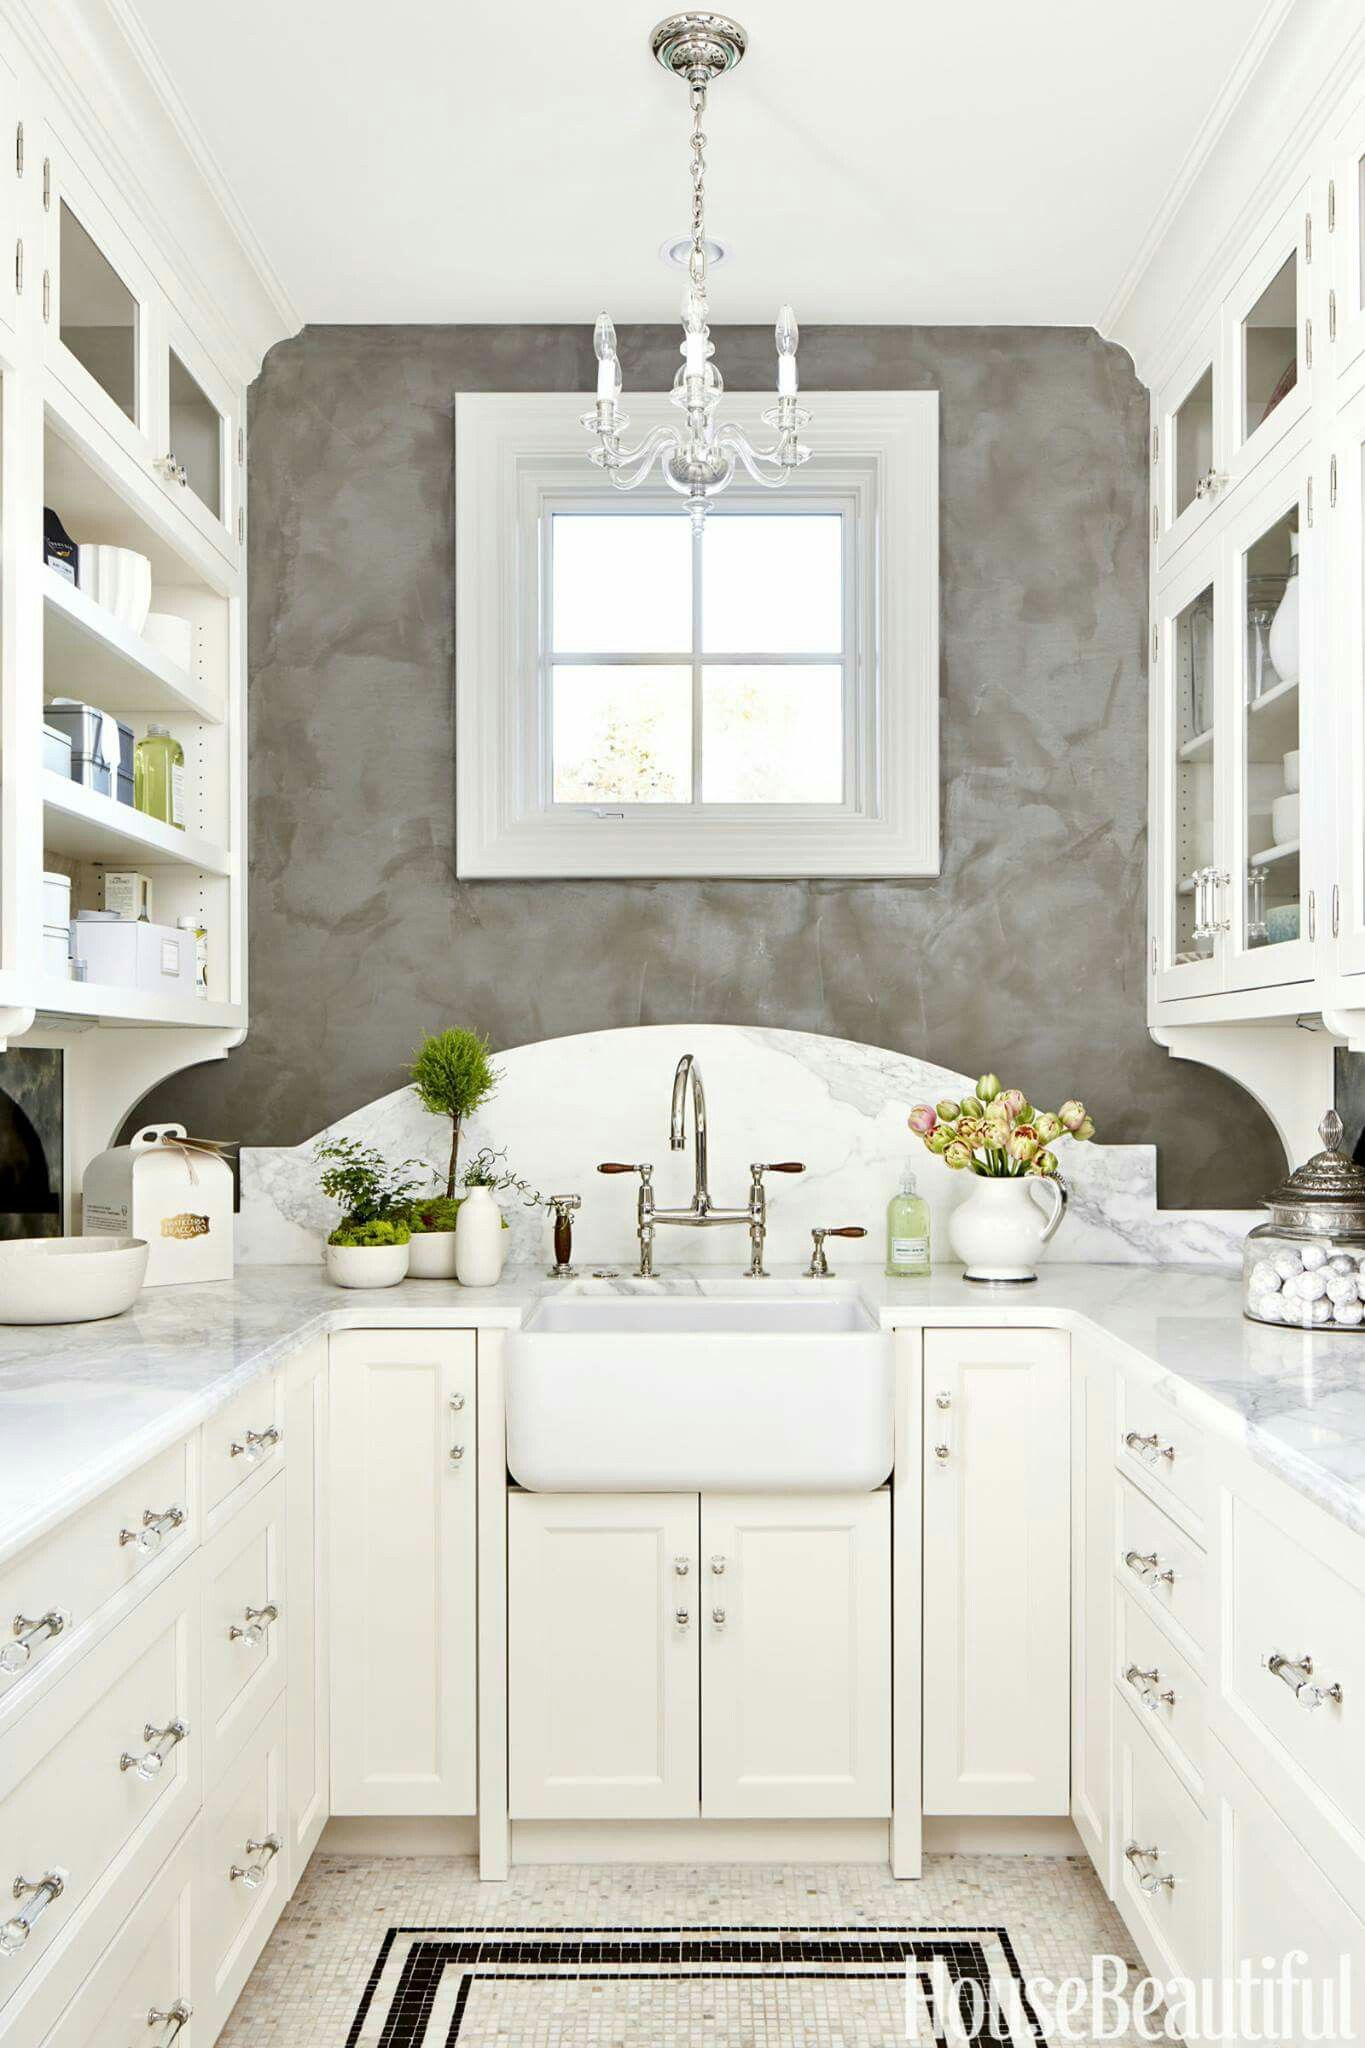 Naples Kitchen And Bath on clermont kitchen and bath, alba kitchen and bath, atlanta kitchen and bath, florida kitchen and bath, new home kitchen and bath, savannah kitchen and bath,